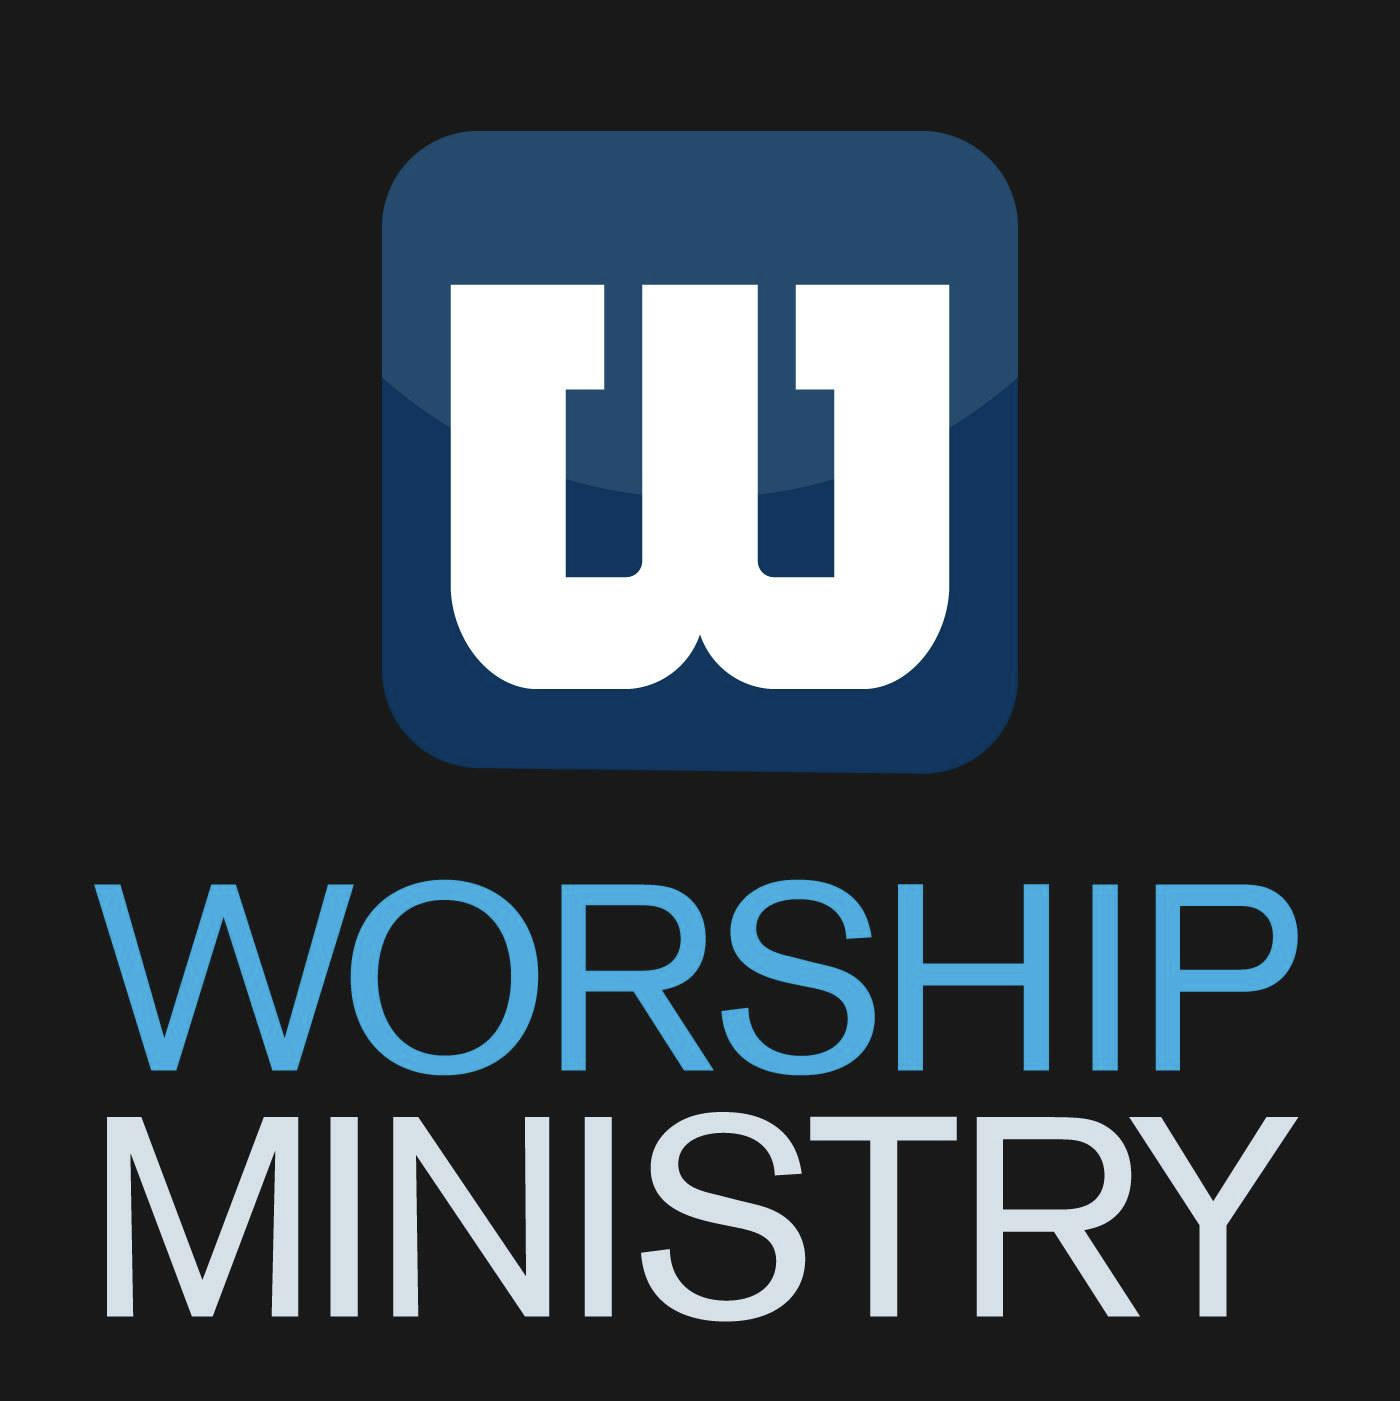 Worship Ministry, Great Church Sound blog